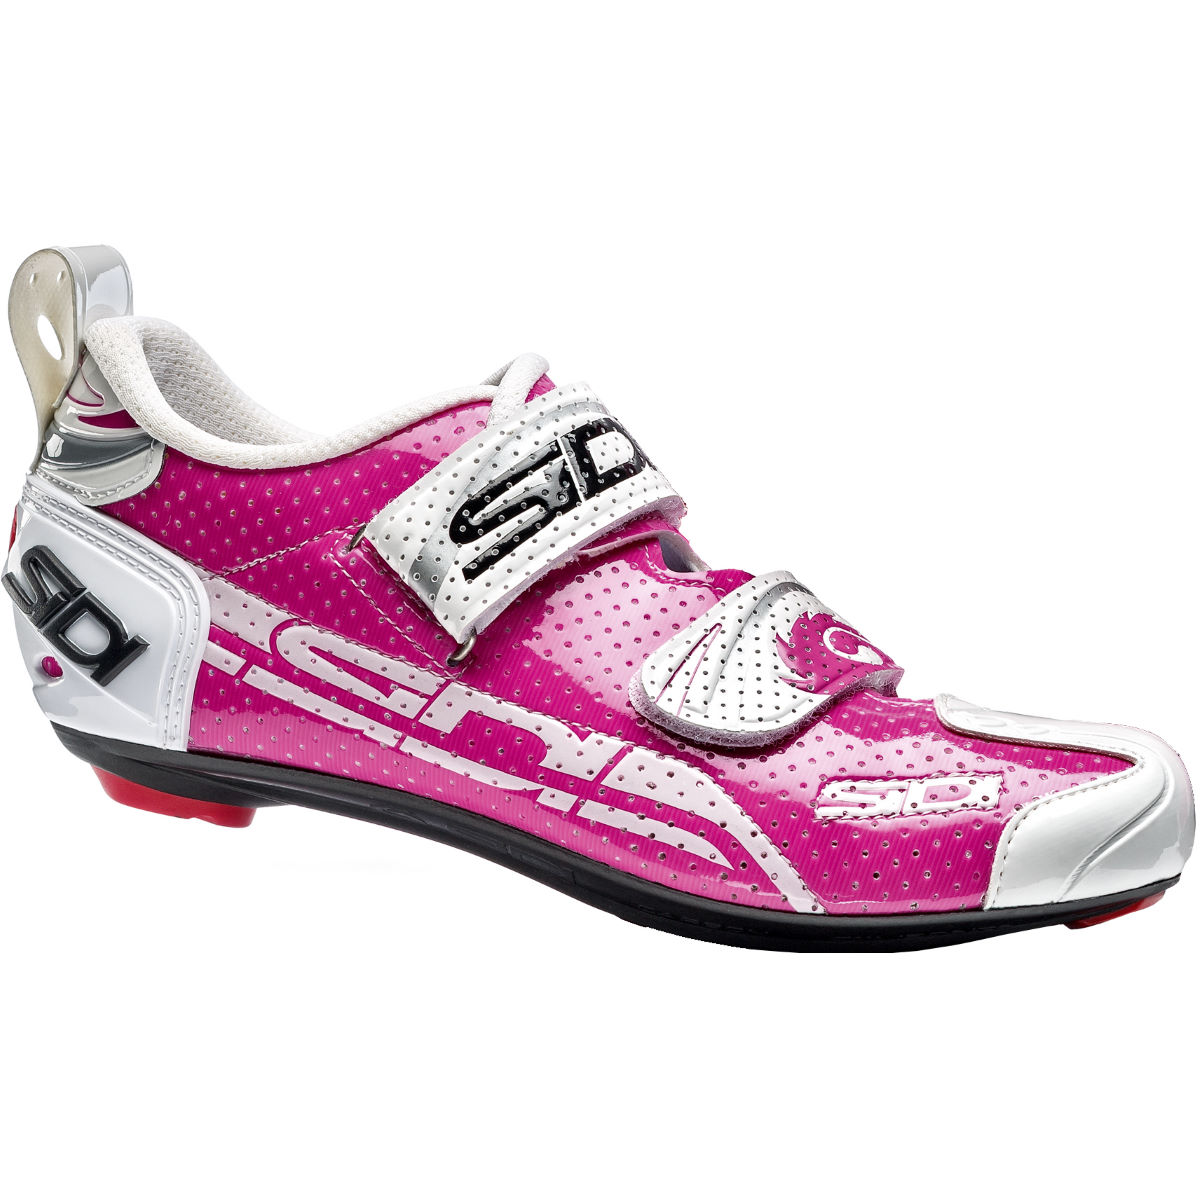 Chaussures de triathlon Femme Sidi T-4 AIR (carbone composite) - 38